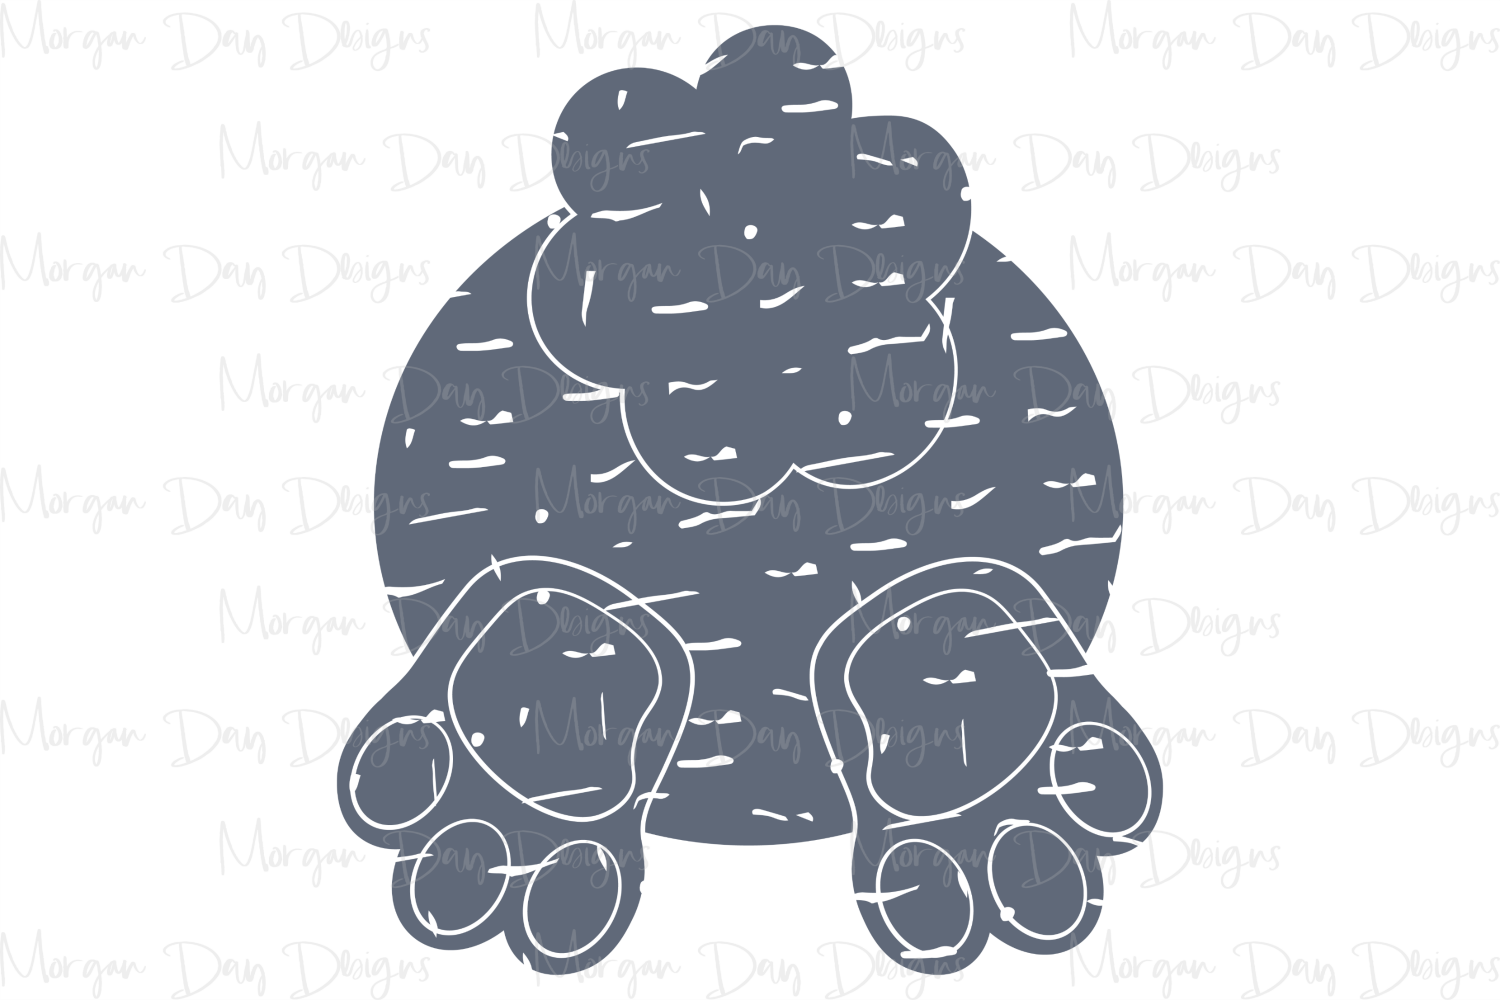 Grunge Bunny Butt - Easter SVG, DXF, AI, EPS, PNG, JPEG example image 3